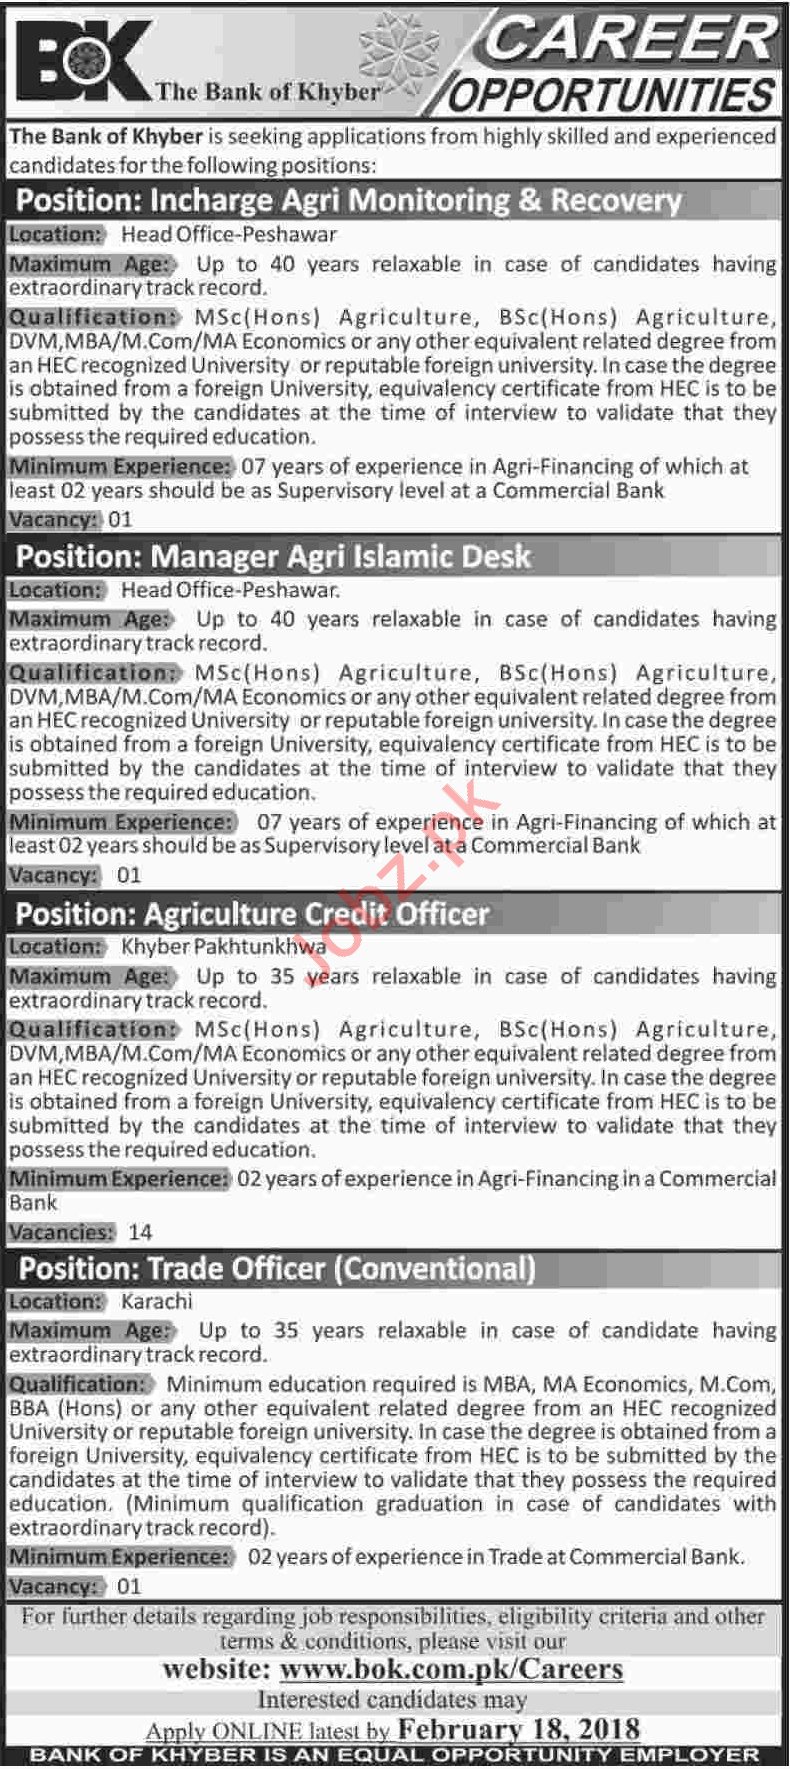 Bank of Khyber BOK Jobs Incharge Agri Monitoring & Recovery